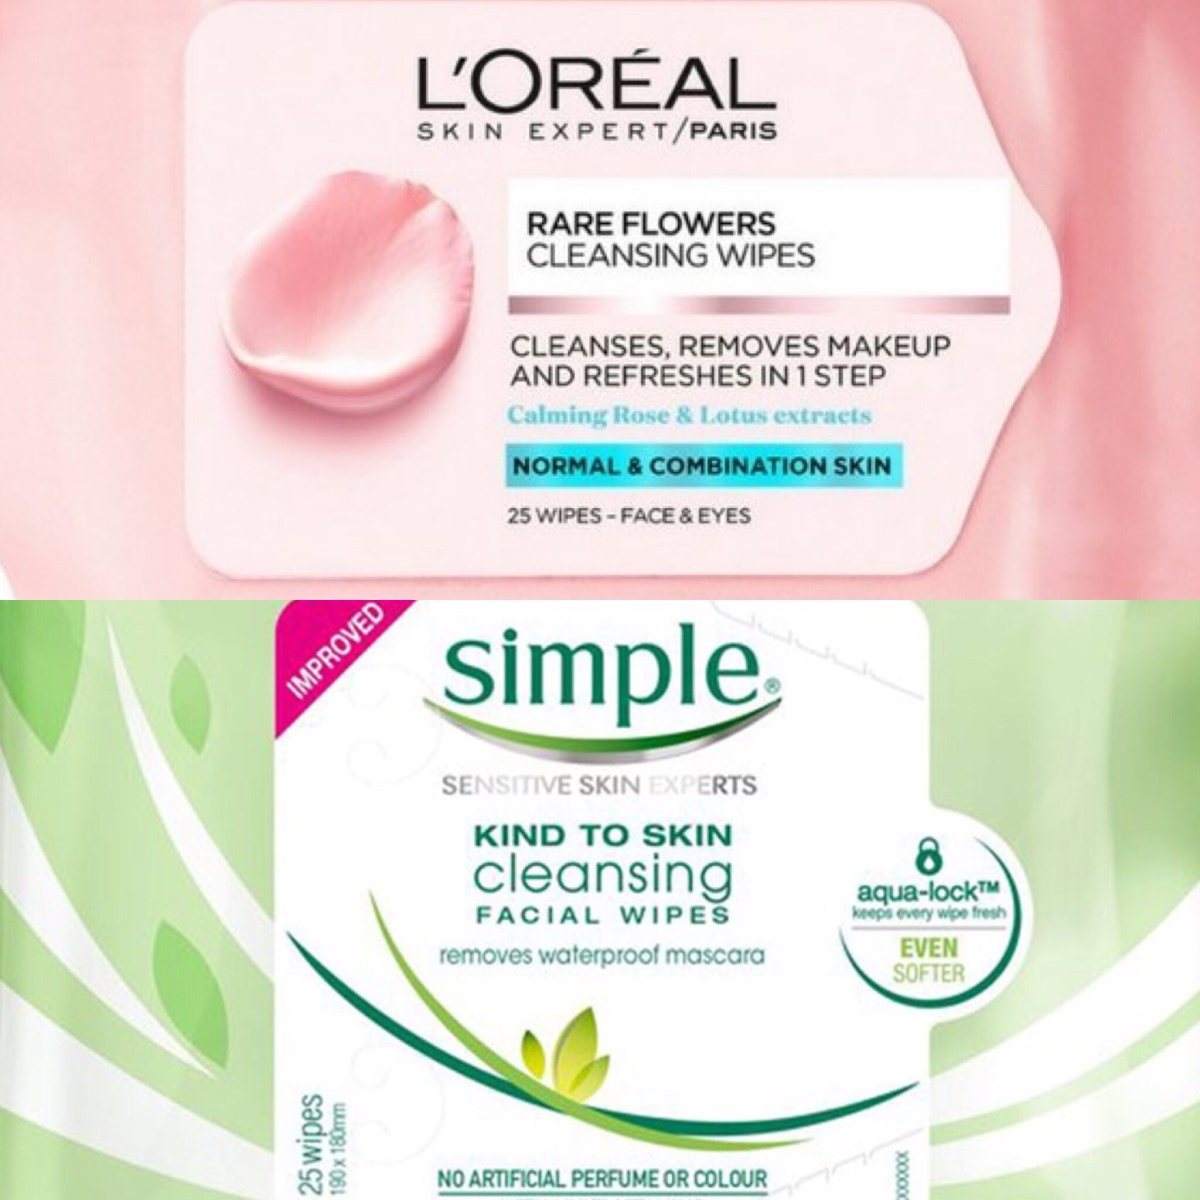 What facial cleansing wipes I use to remove makeup